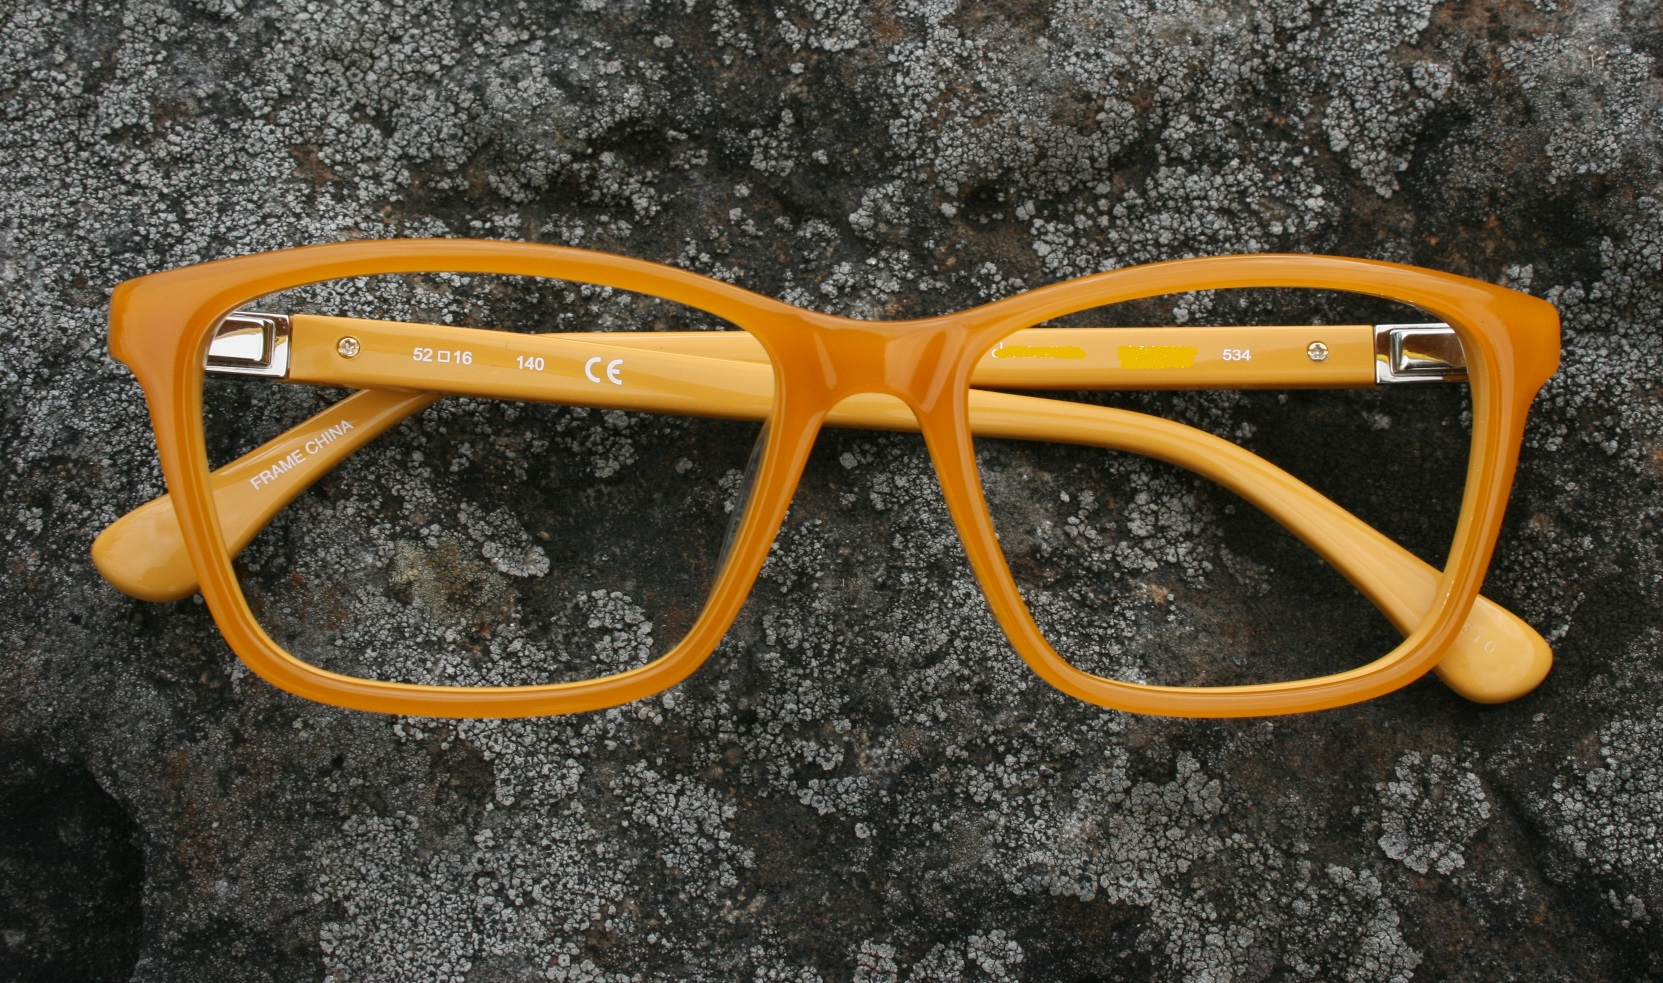 Just frames for glasses - Online Slots Width 604 Height 401 These Two Are The Same Frame Just Different Colors This Shape Will Compliment Many Face Shapes